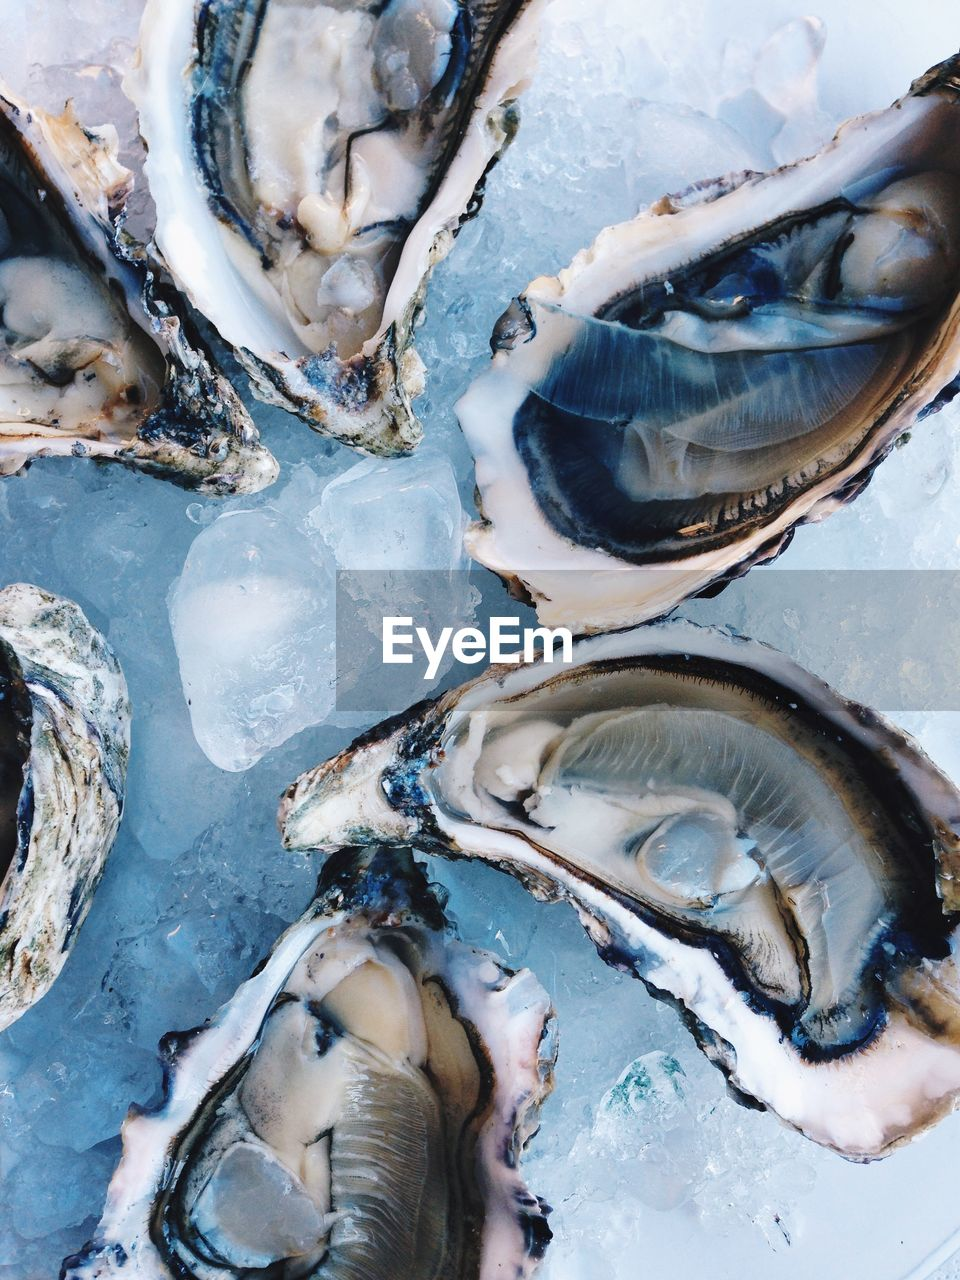 seafood, raw food, wellbeing, food, animal, cold temperature, freshness, food and drink, fish, ice, no people, vertebrate, healthy eating, full frame, oyster, close-up, shell, for sale, high angle view, animal wildlife, fish market, sale, fishing industry, marine